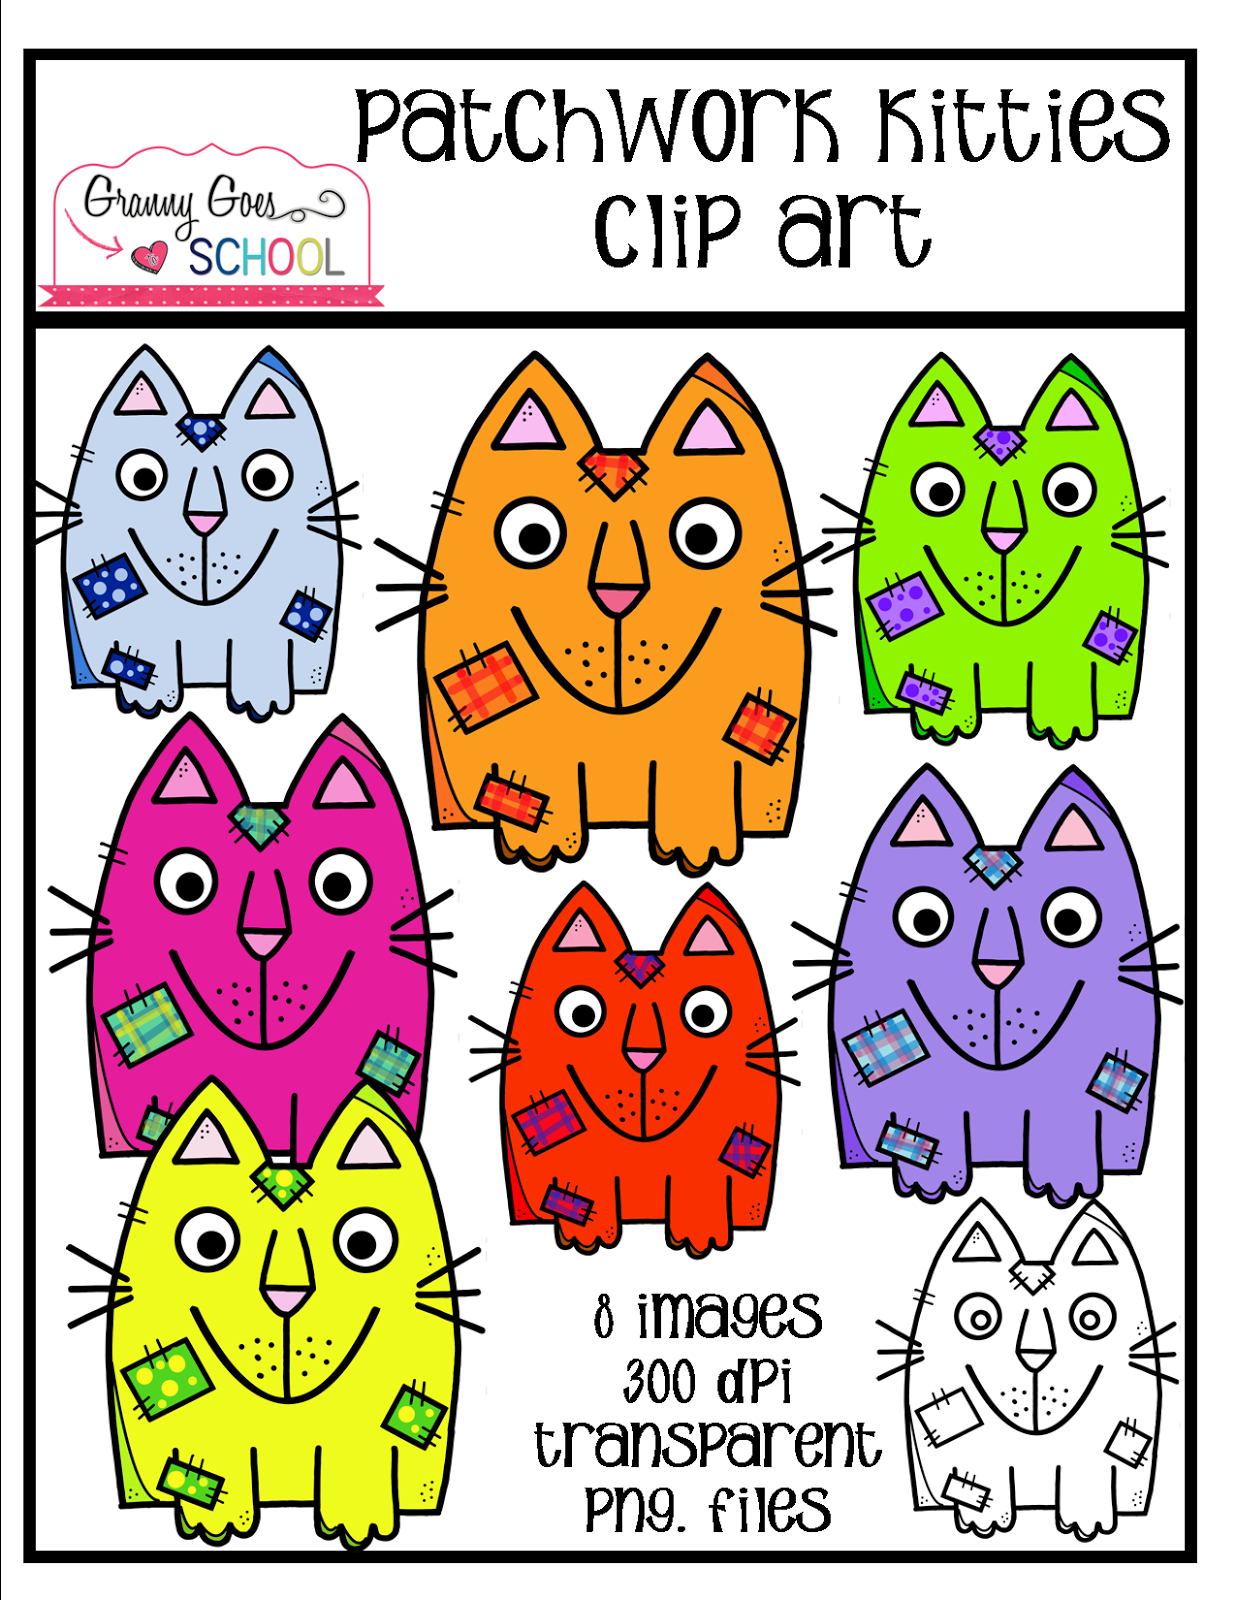 http://www.teacherspayteachers.com/Product/Patchwork-Kitties-Freebie-Clip-Art-1608060